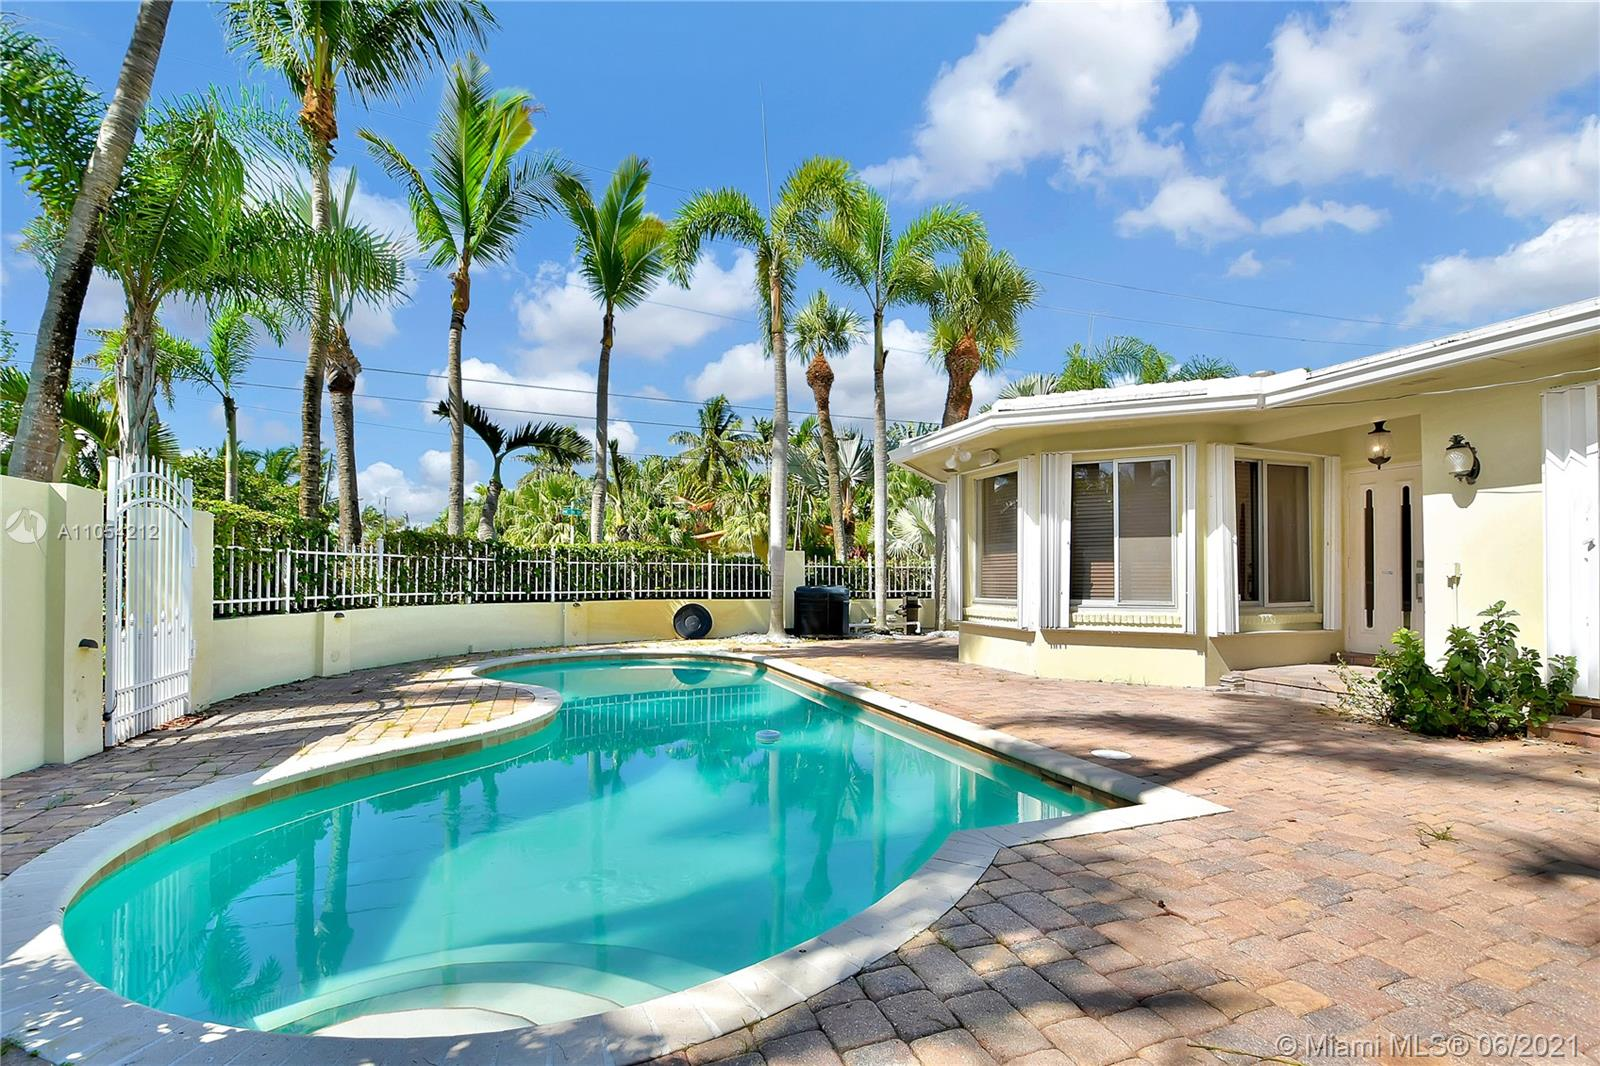 Charming beach home with lush landscaping, spacious outdoor area and pool on a private corner lot, just steps to Lauderdale Beach. The home features a great open spacious floorplan with three en-suite bedrooms and a garage. This is an amazing opportunity to live in a low-key beach neighborhood with no Hoa. The perfect opportunity to build your multi-million dollar home or turn to vacation rental.